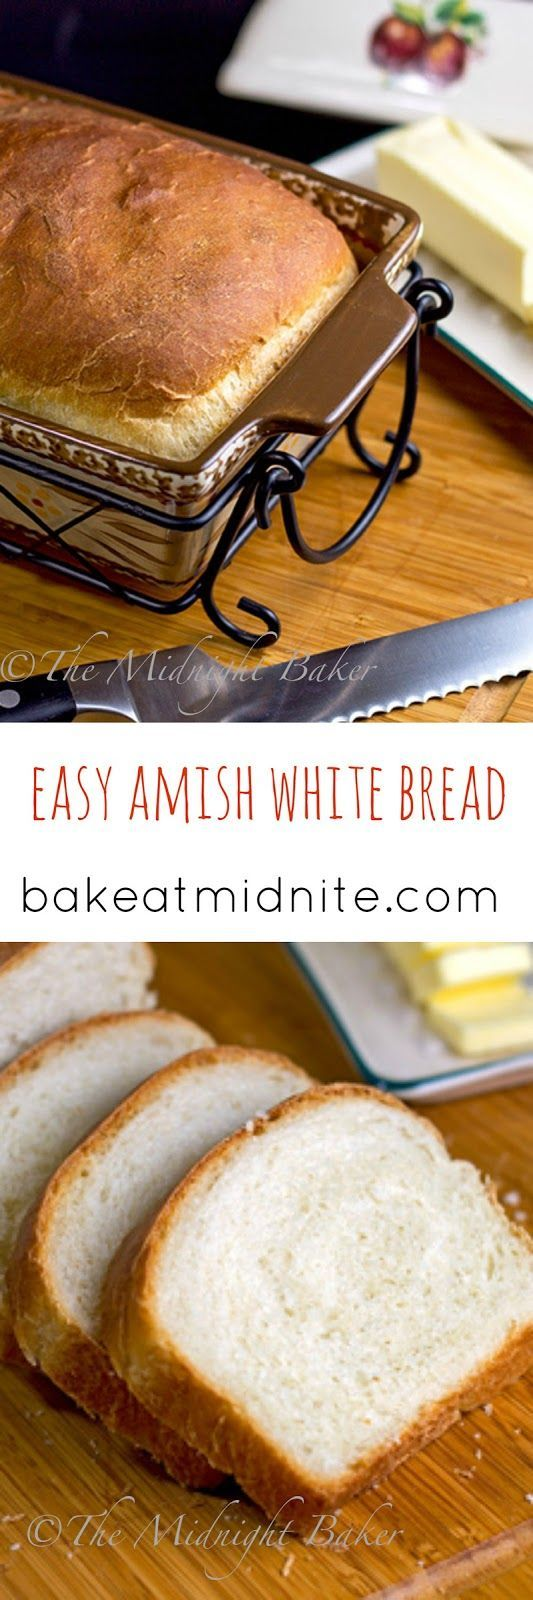 Amish White Bread | bakeatmidnite.com | #bread #copycat #recipe